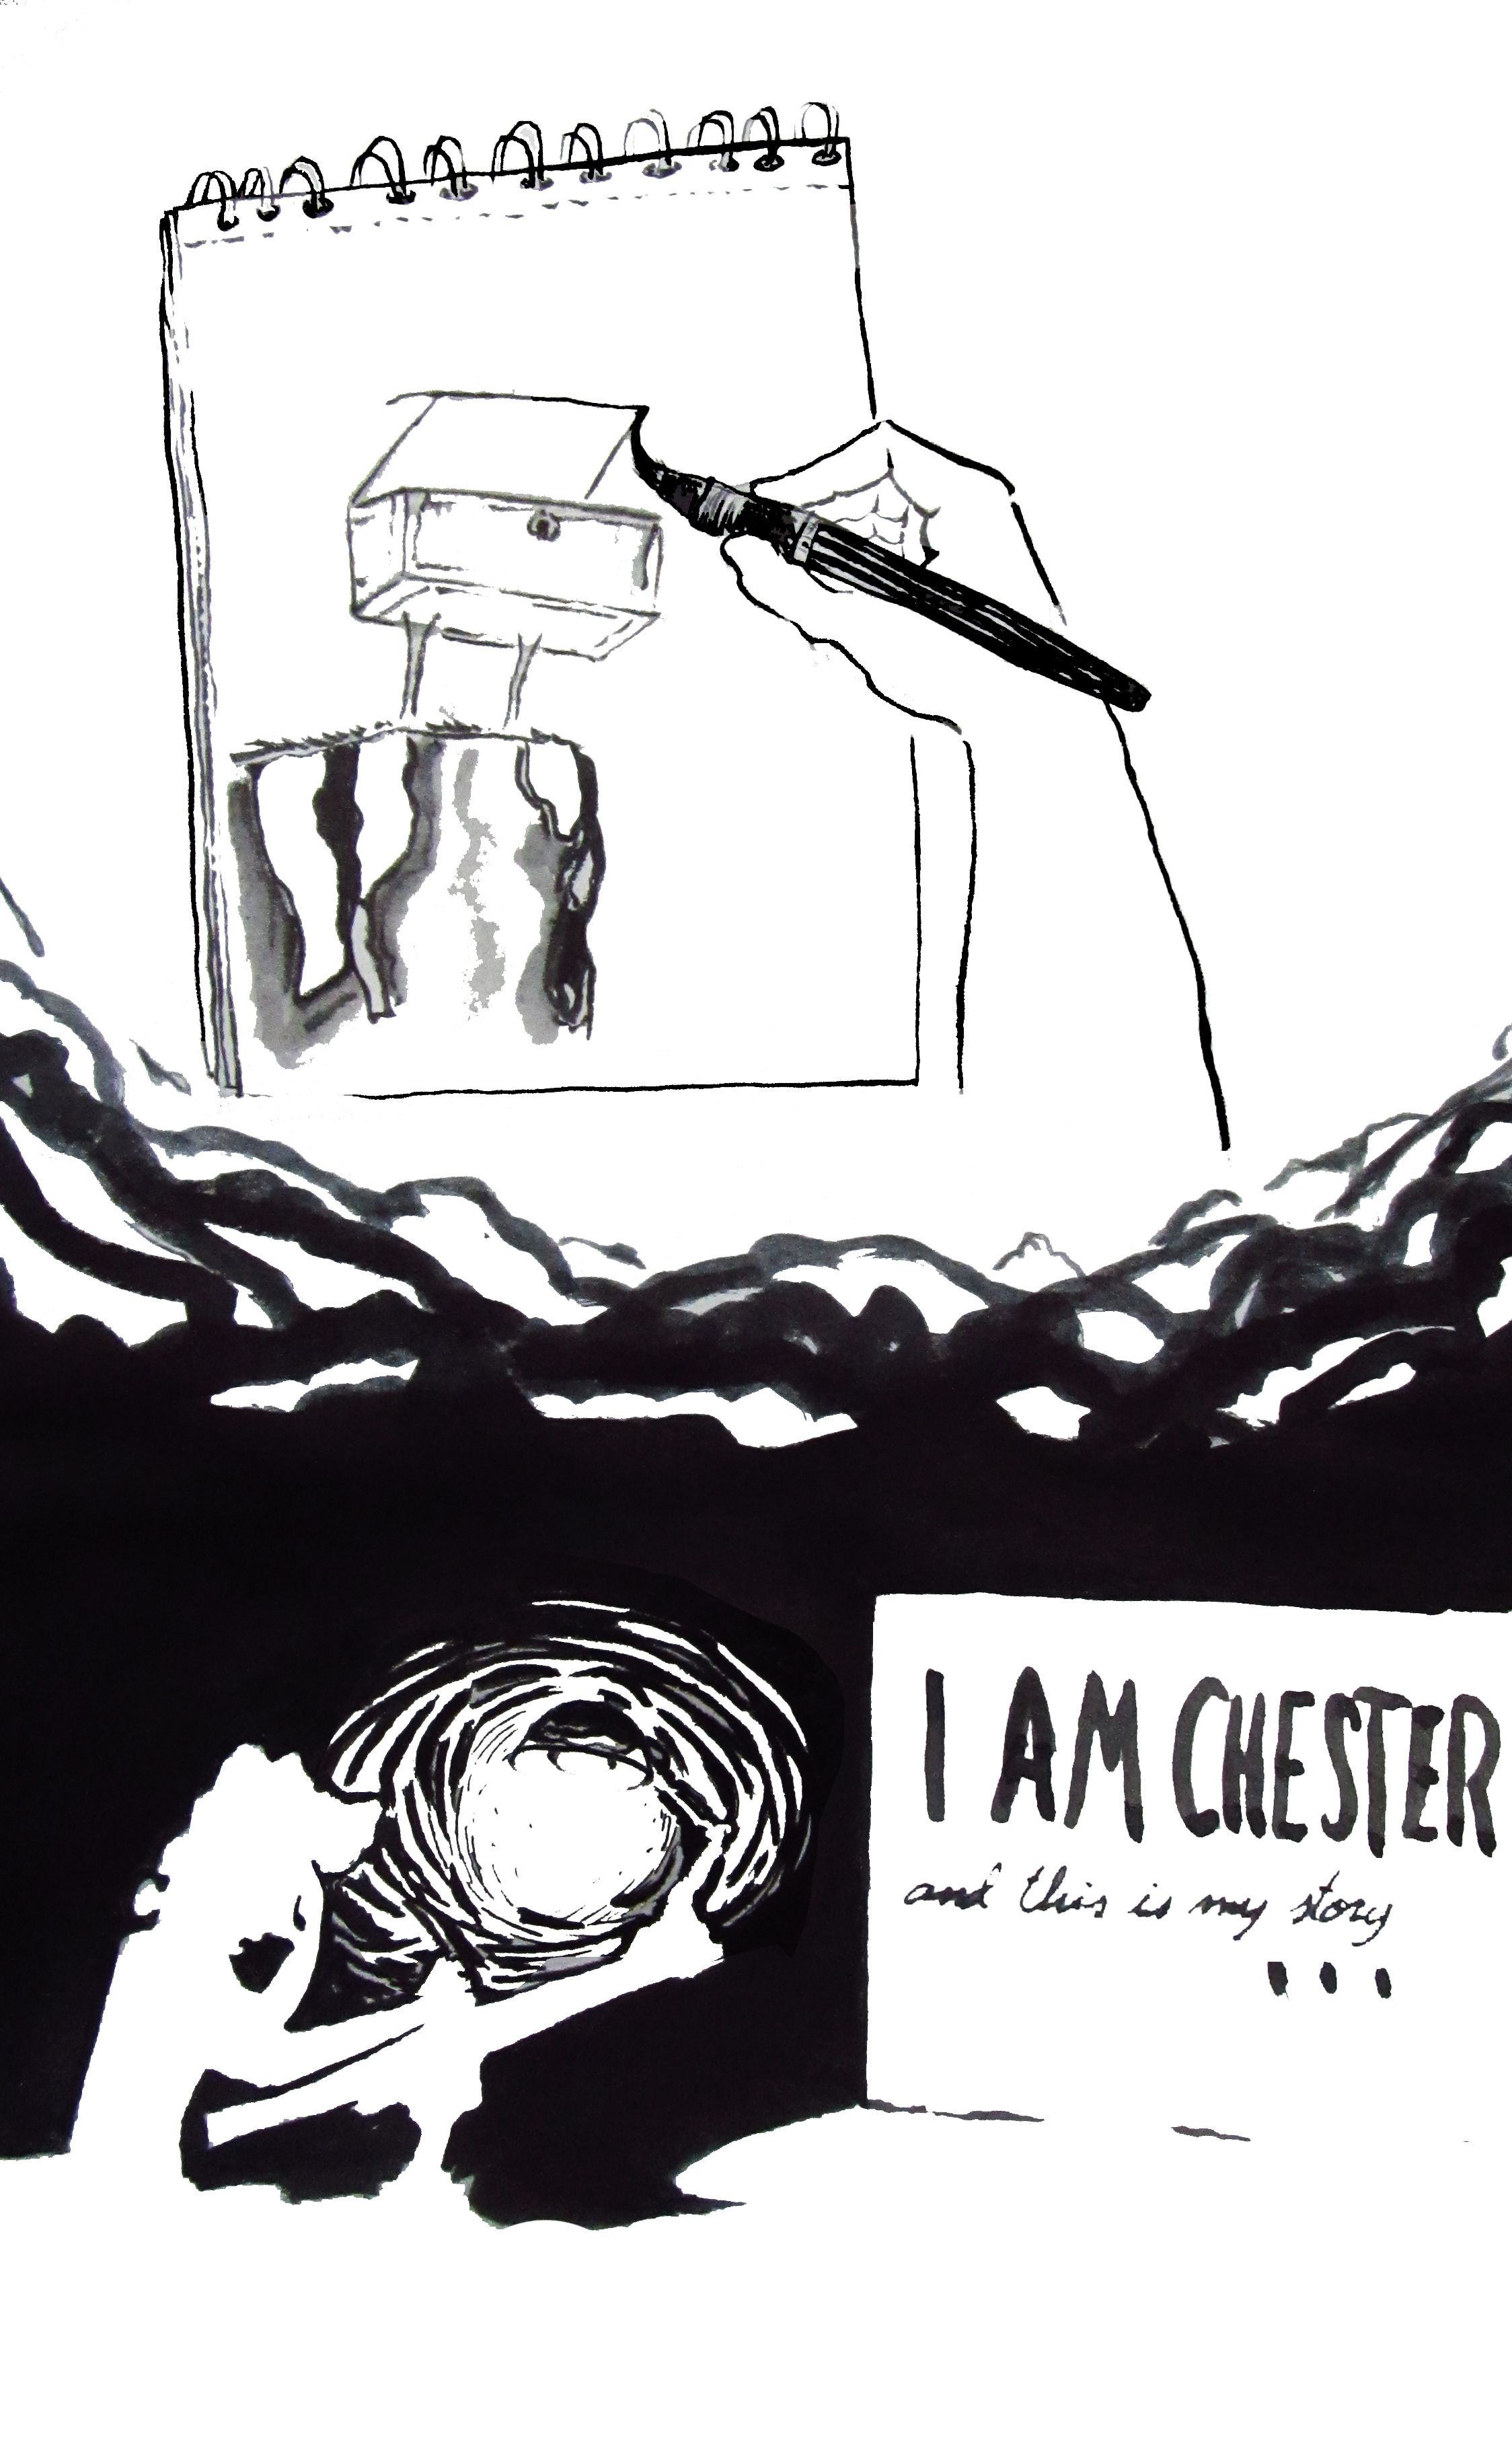 I AM CHESTER